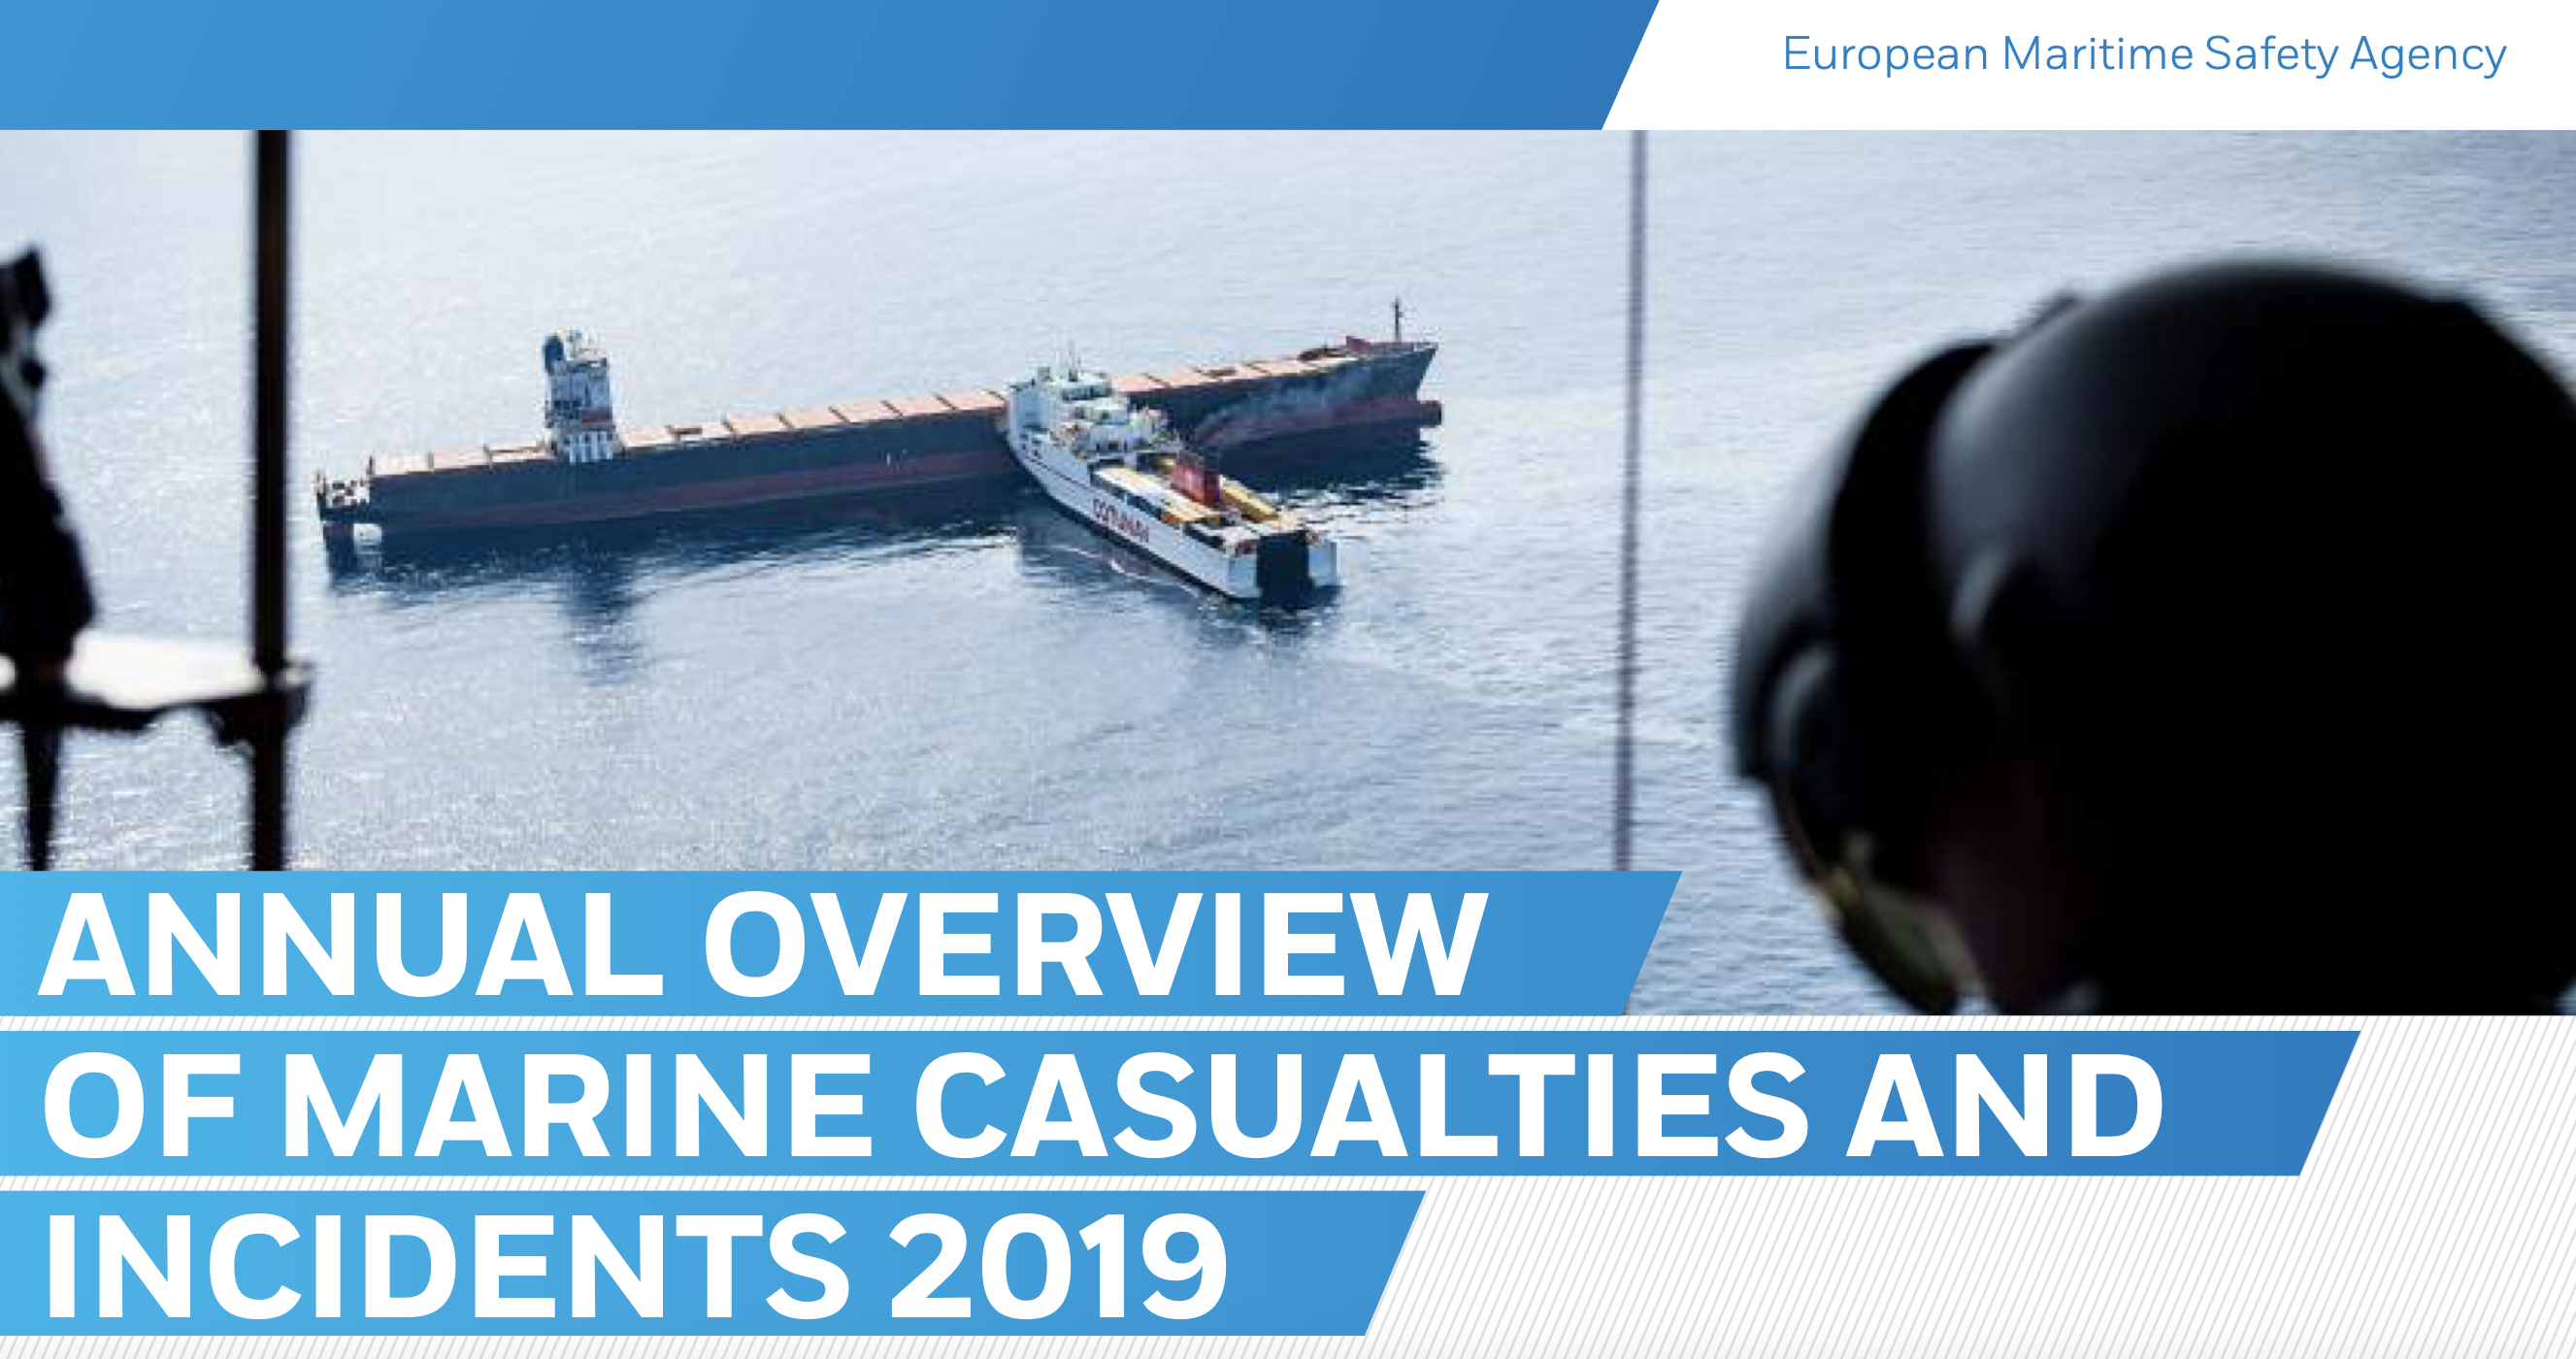 ANNUAL OVERVIEW OF MARINE CASUALTIES AND INCIDENTS 2019 - EMSA